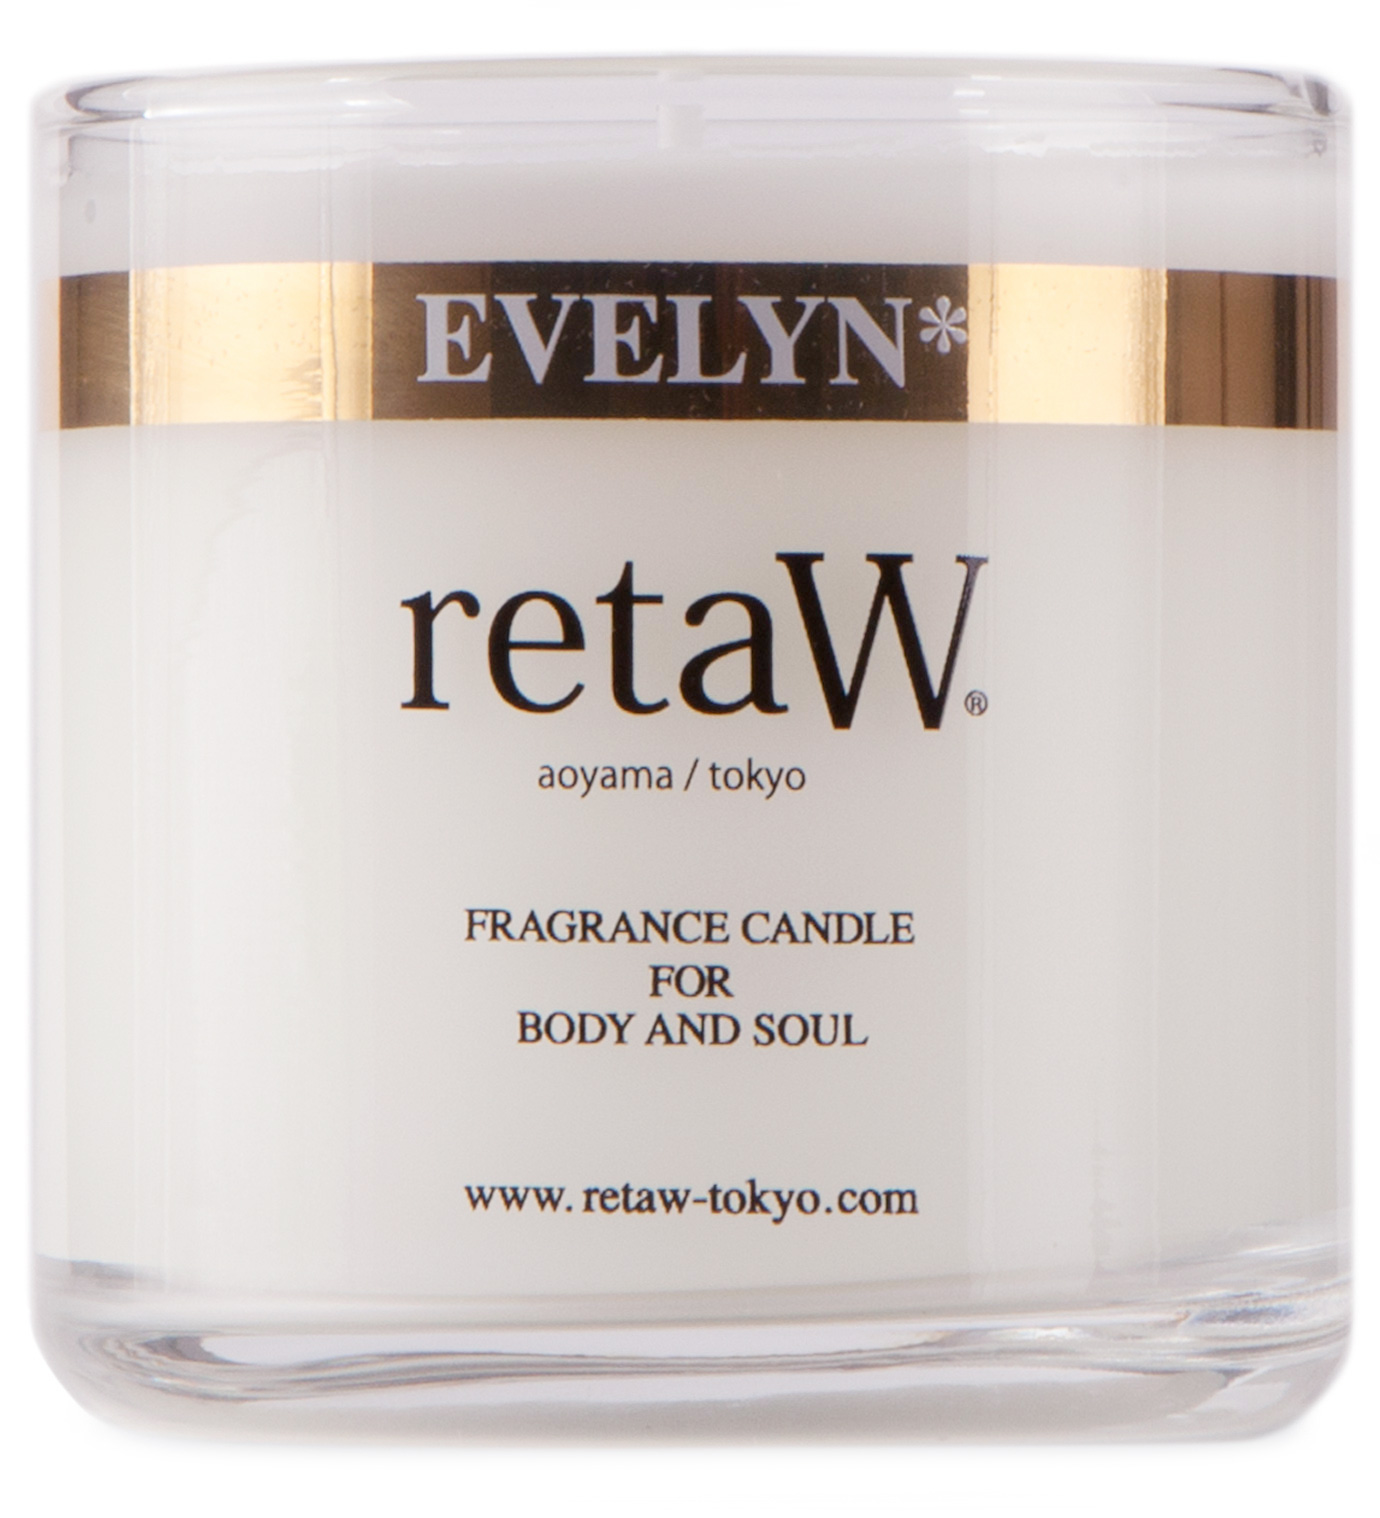 retaW Evelyn Candle